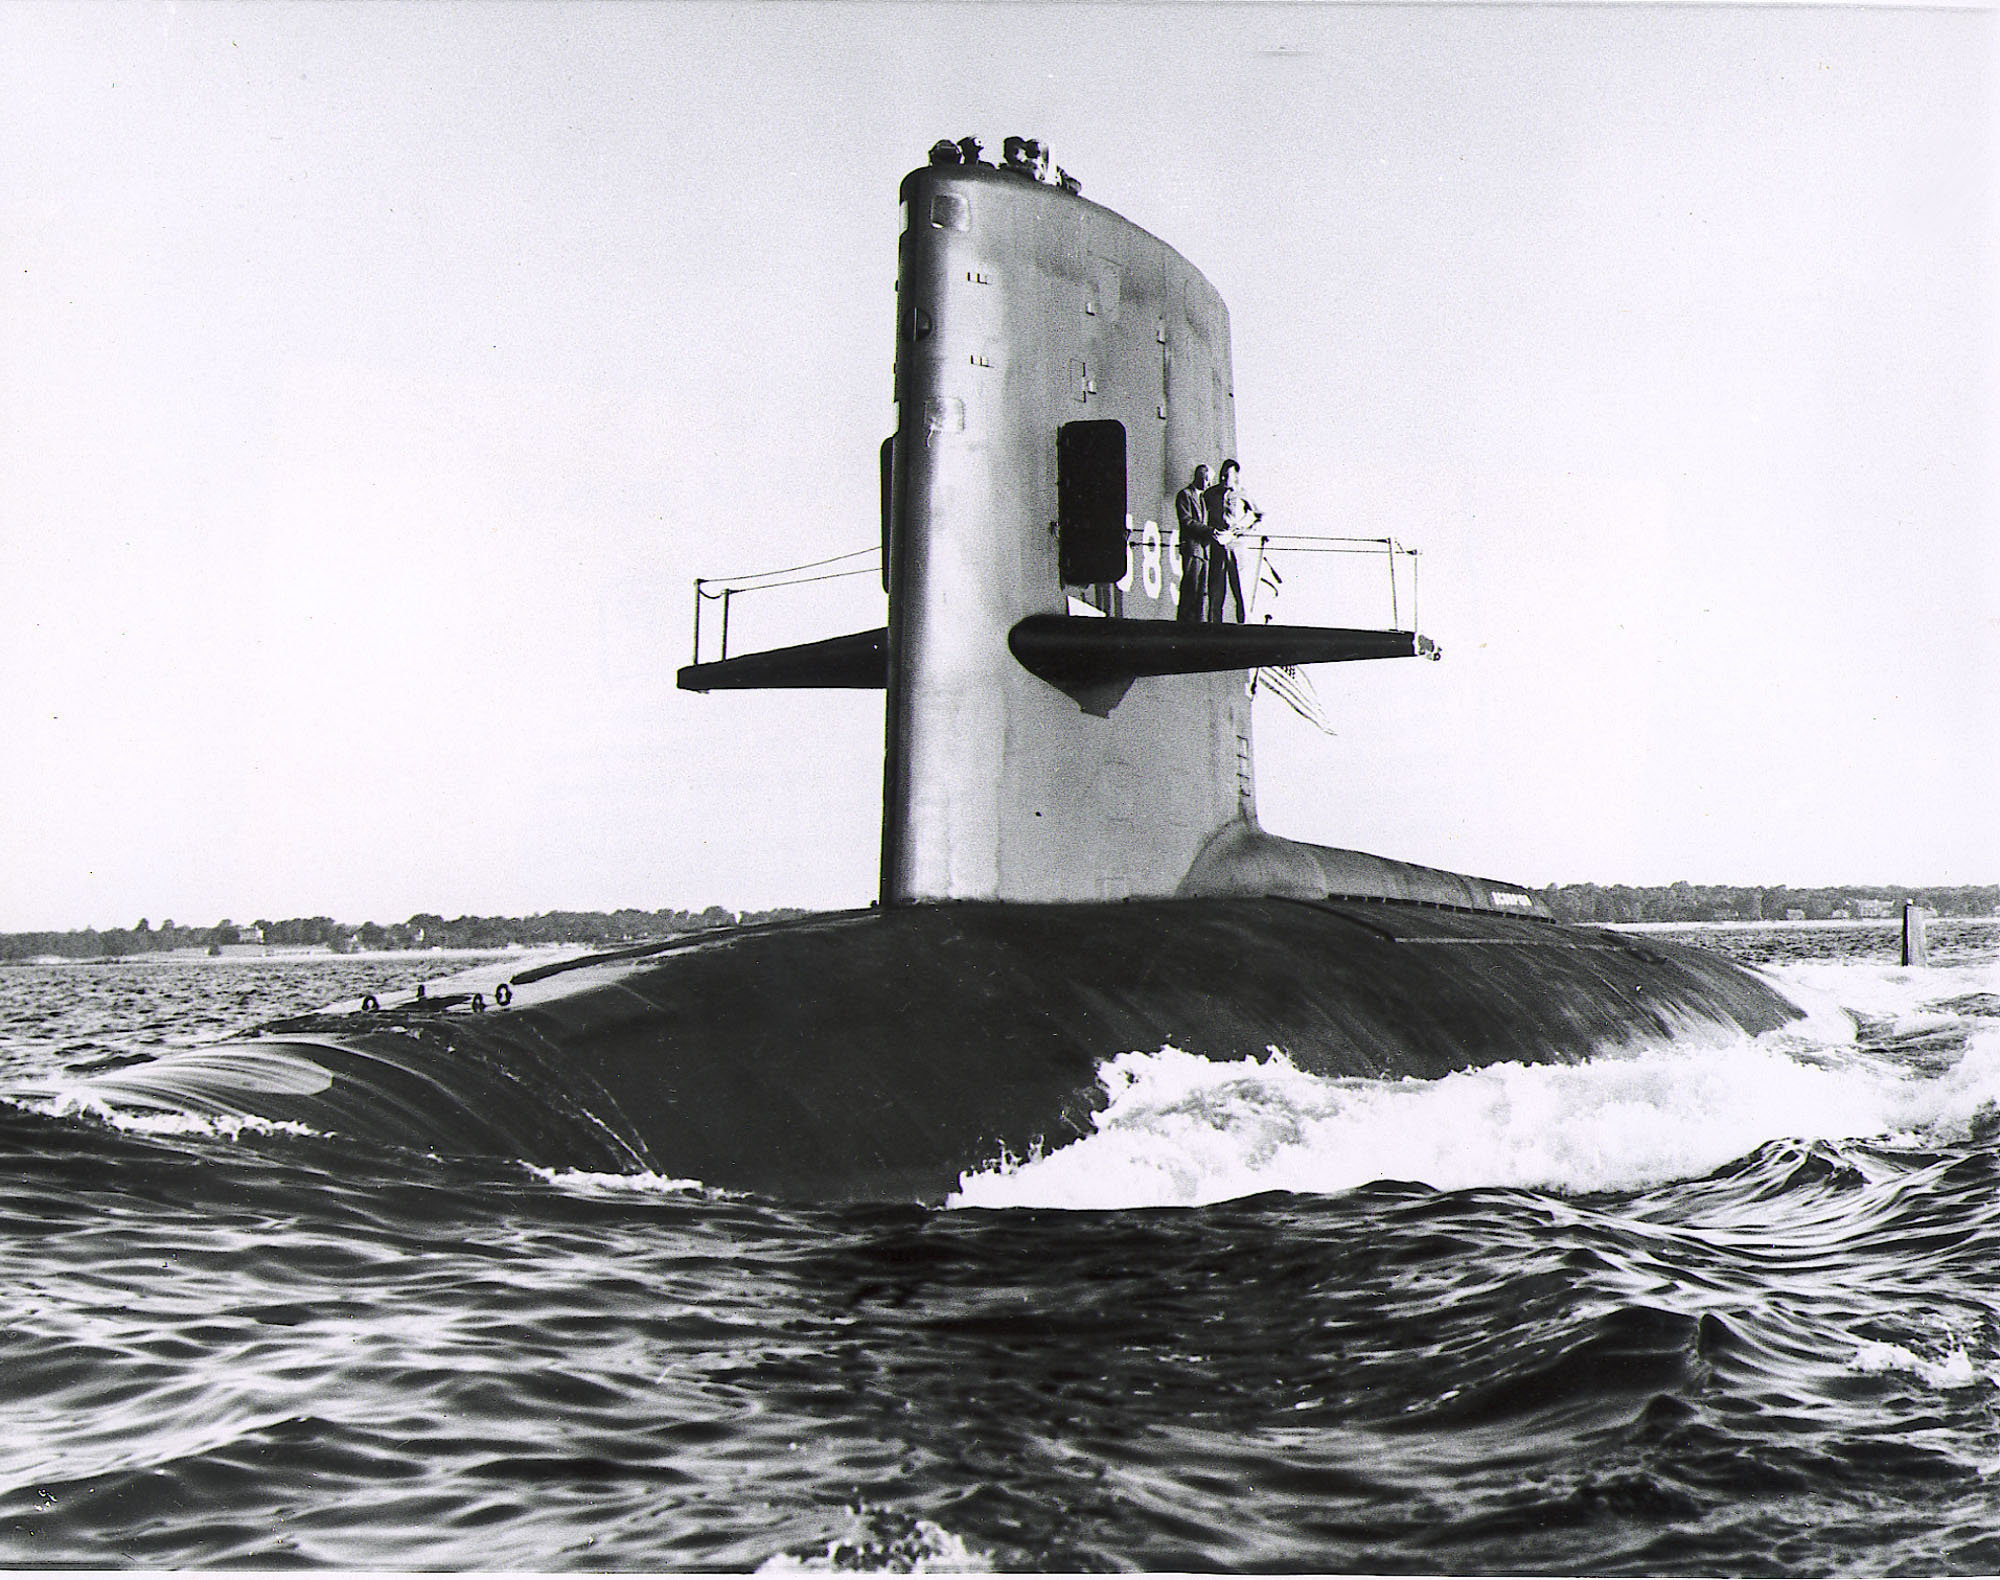 The nuclear submarine USS Scorpion is seen in the Atlantic Ocean in 1968 - The nuclear attak submarine Scorpion which was reported overdue at sea by the Pentagon May 27, 1968